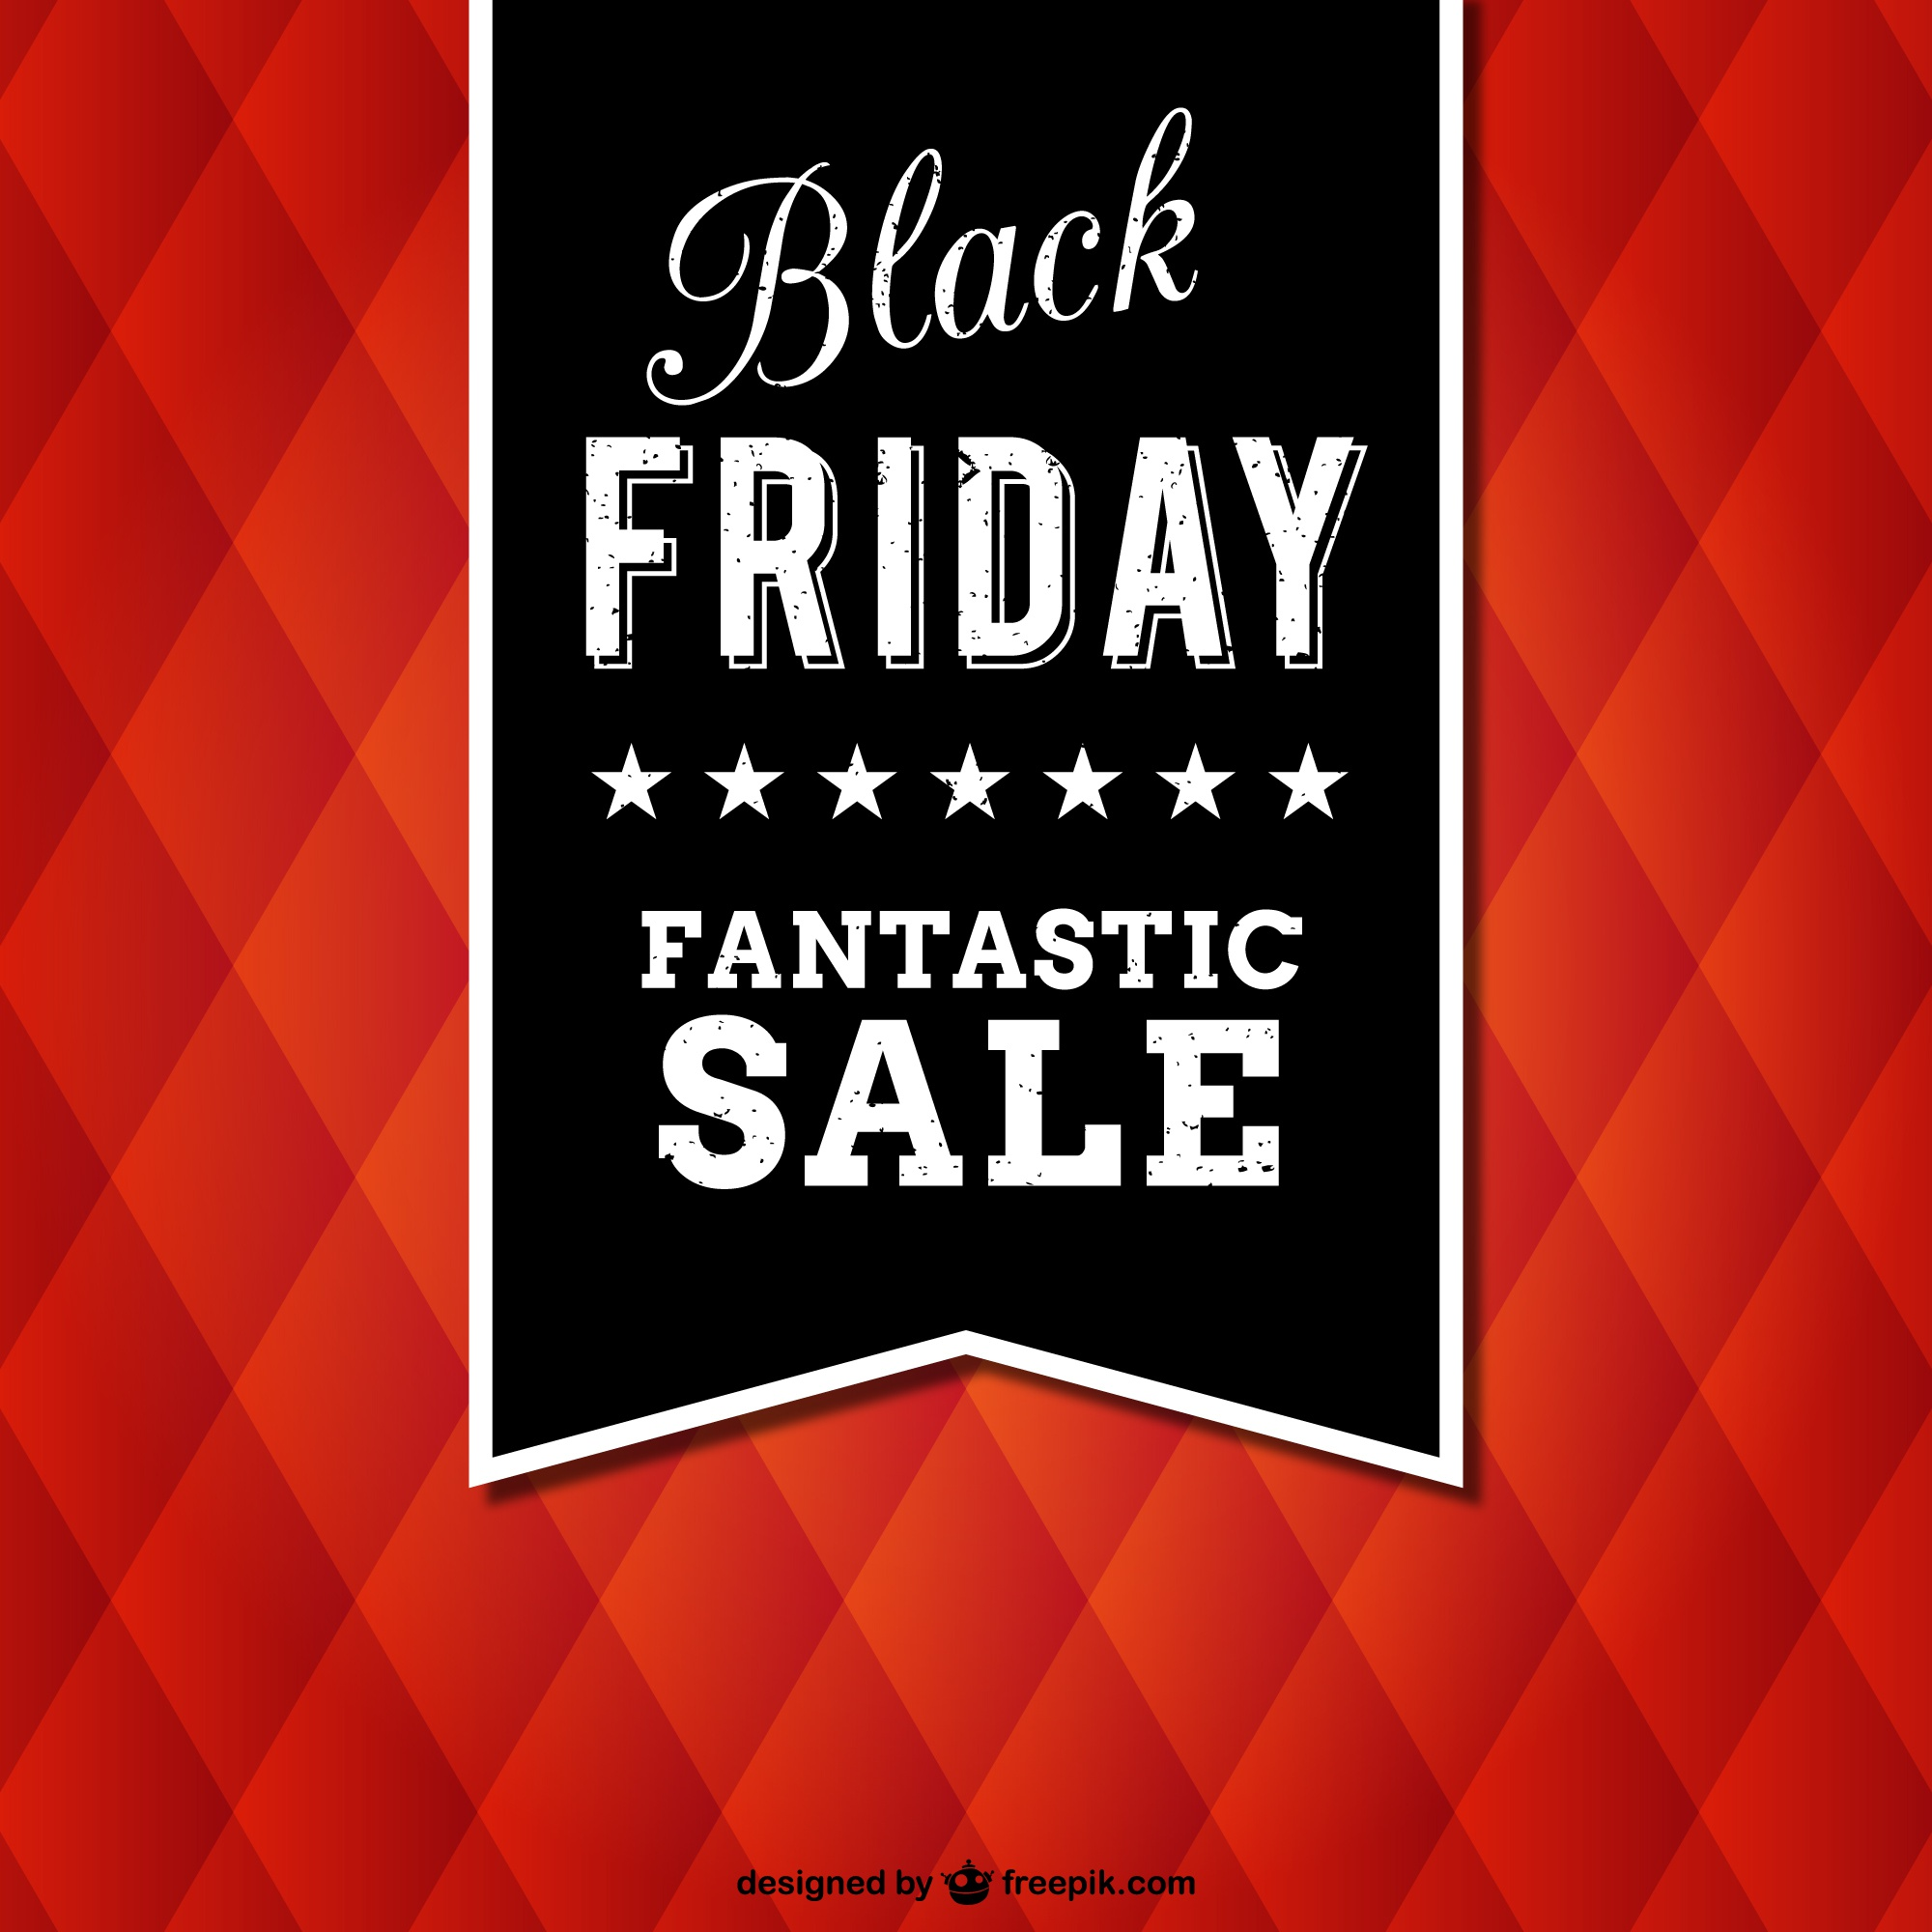 Black Friday vector with texture